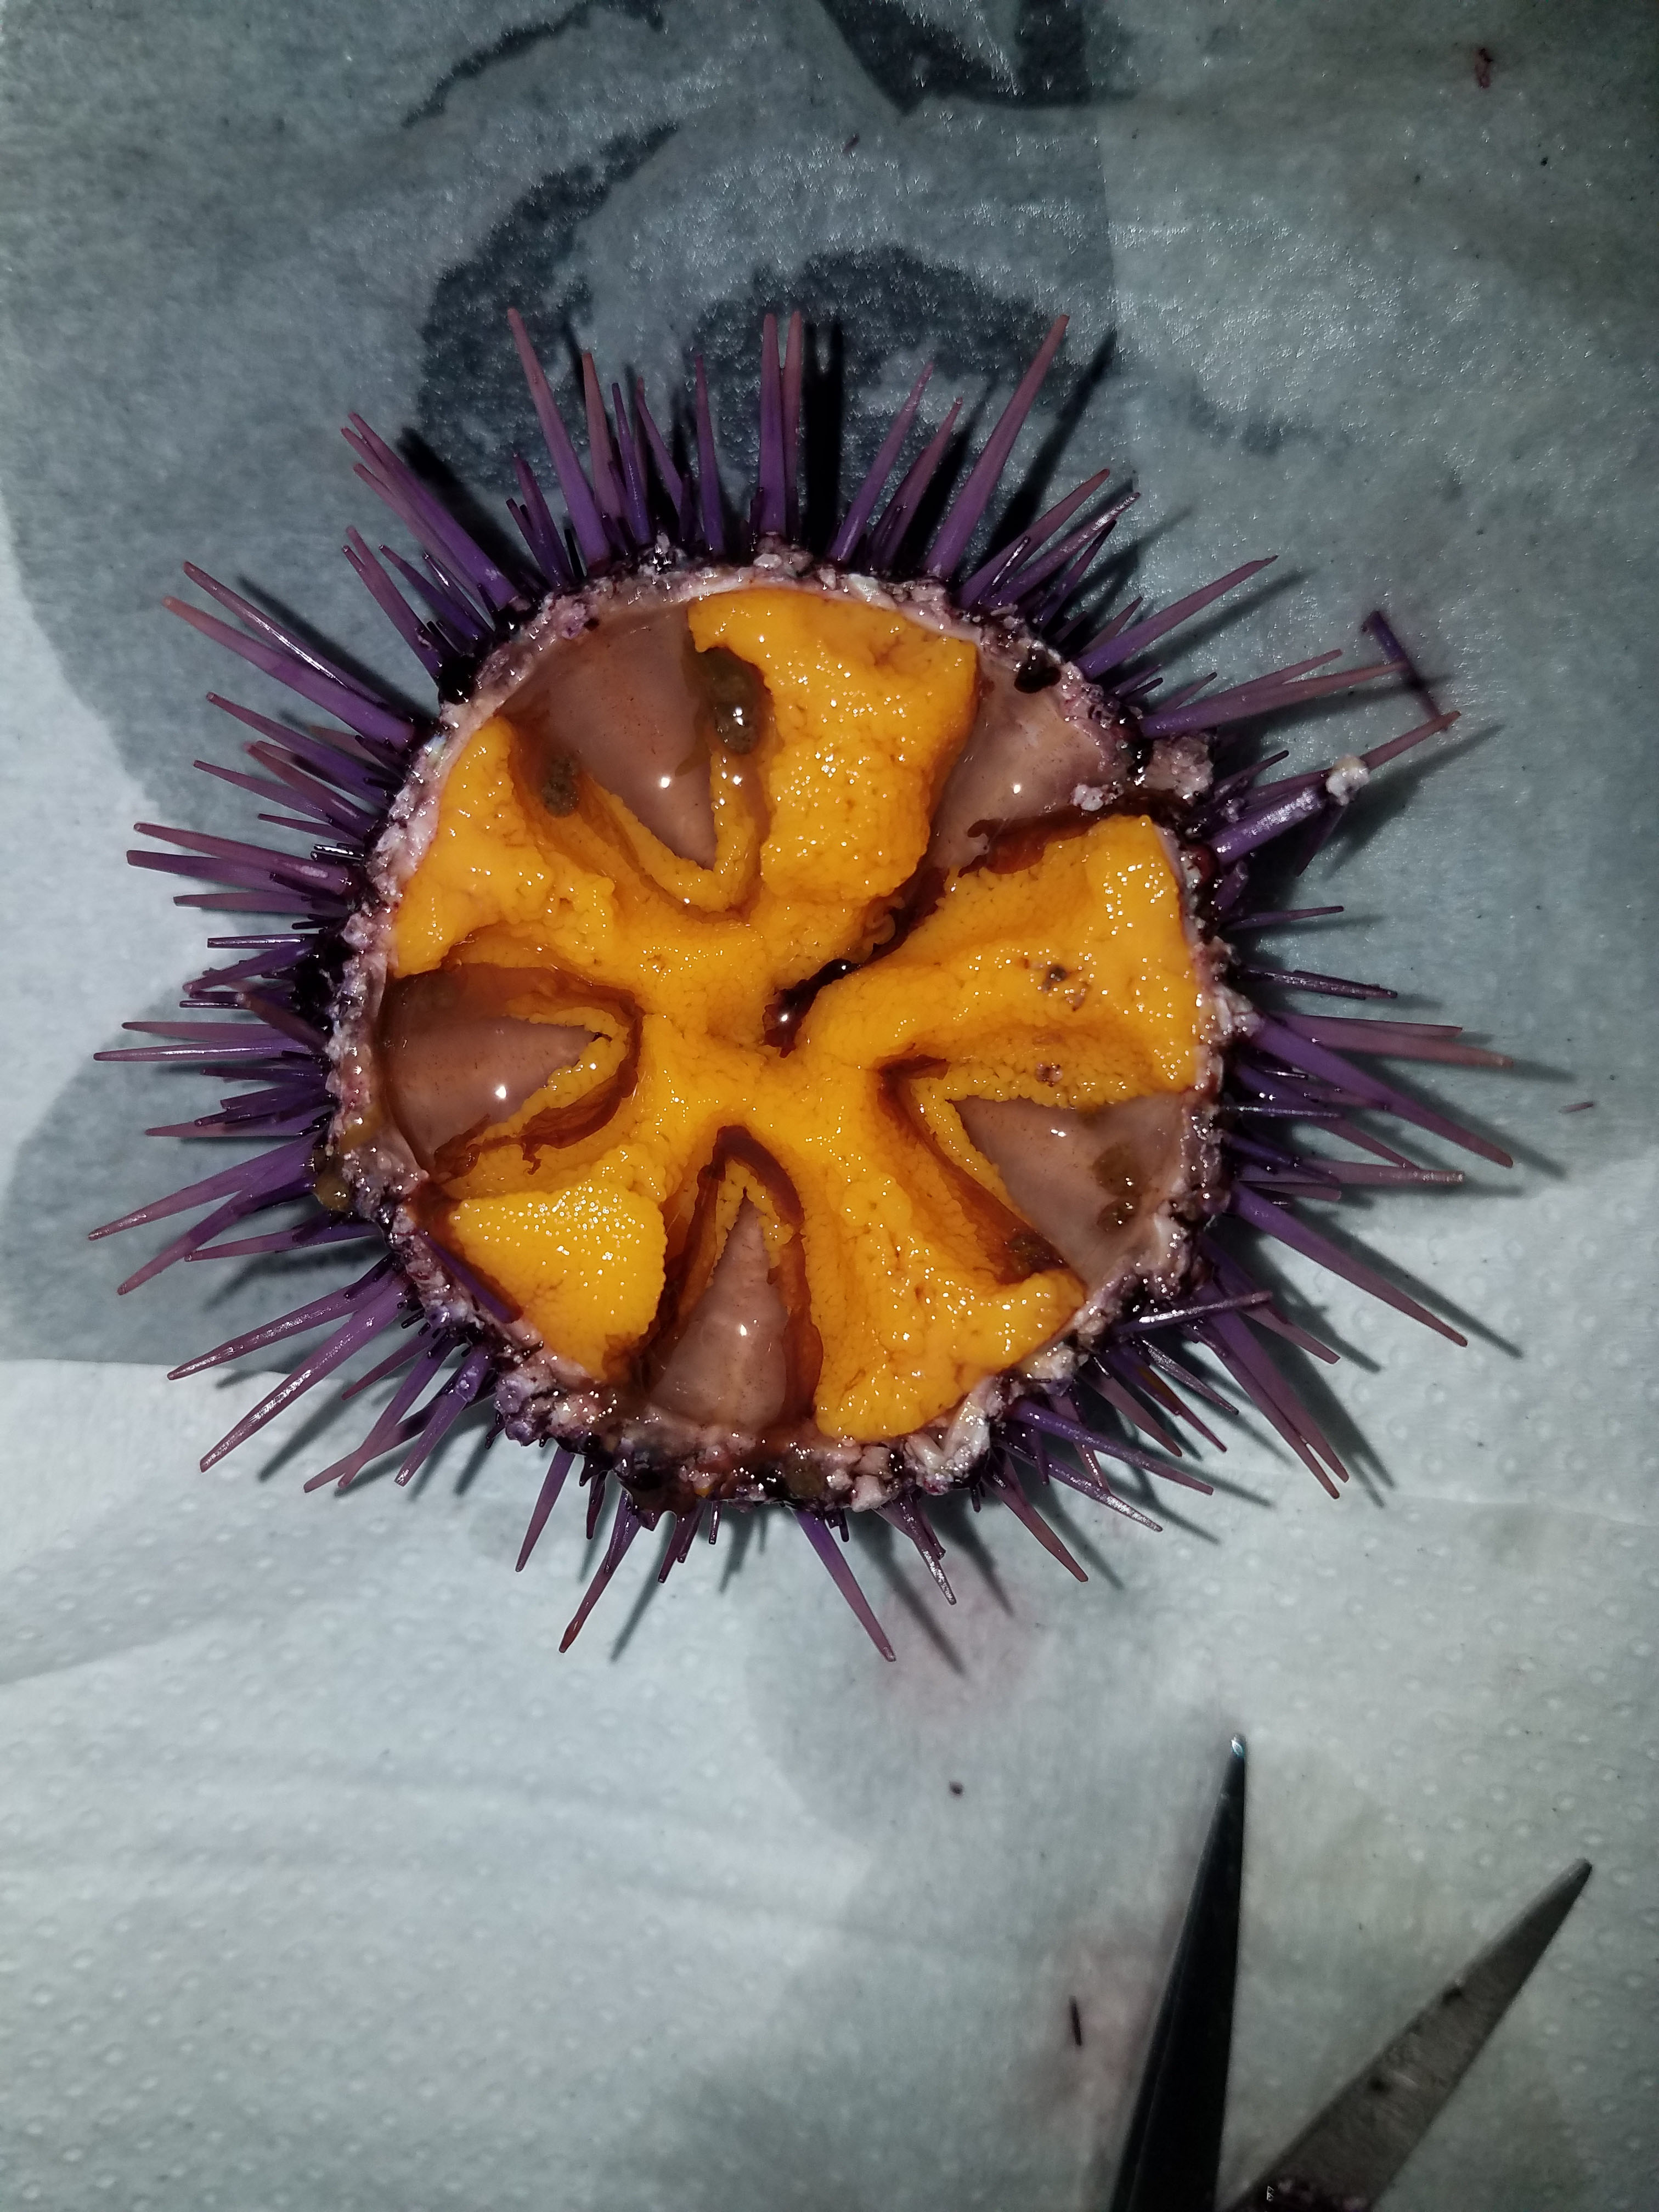 A typical urchin after 9 wk of feedingad libitumon Urchinomics feed; plump orange gonads (roe, uni) have developed to a marketable size.